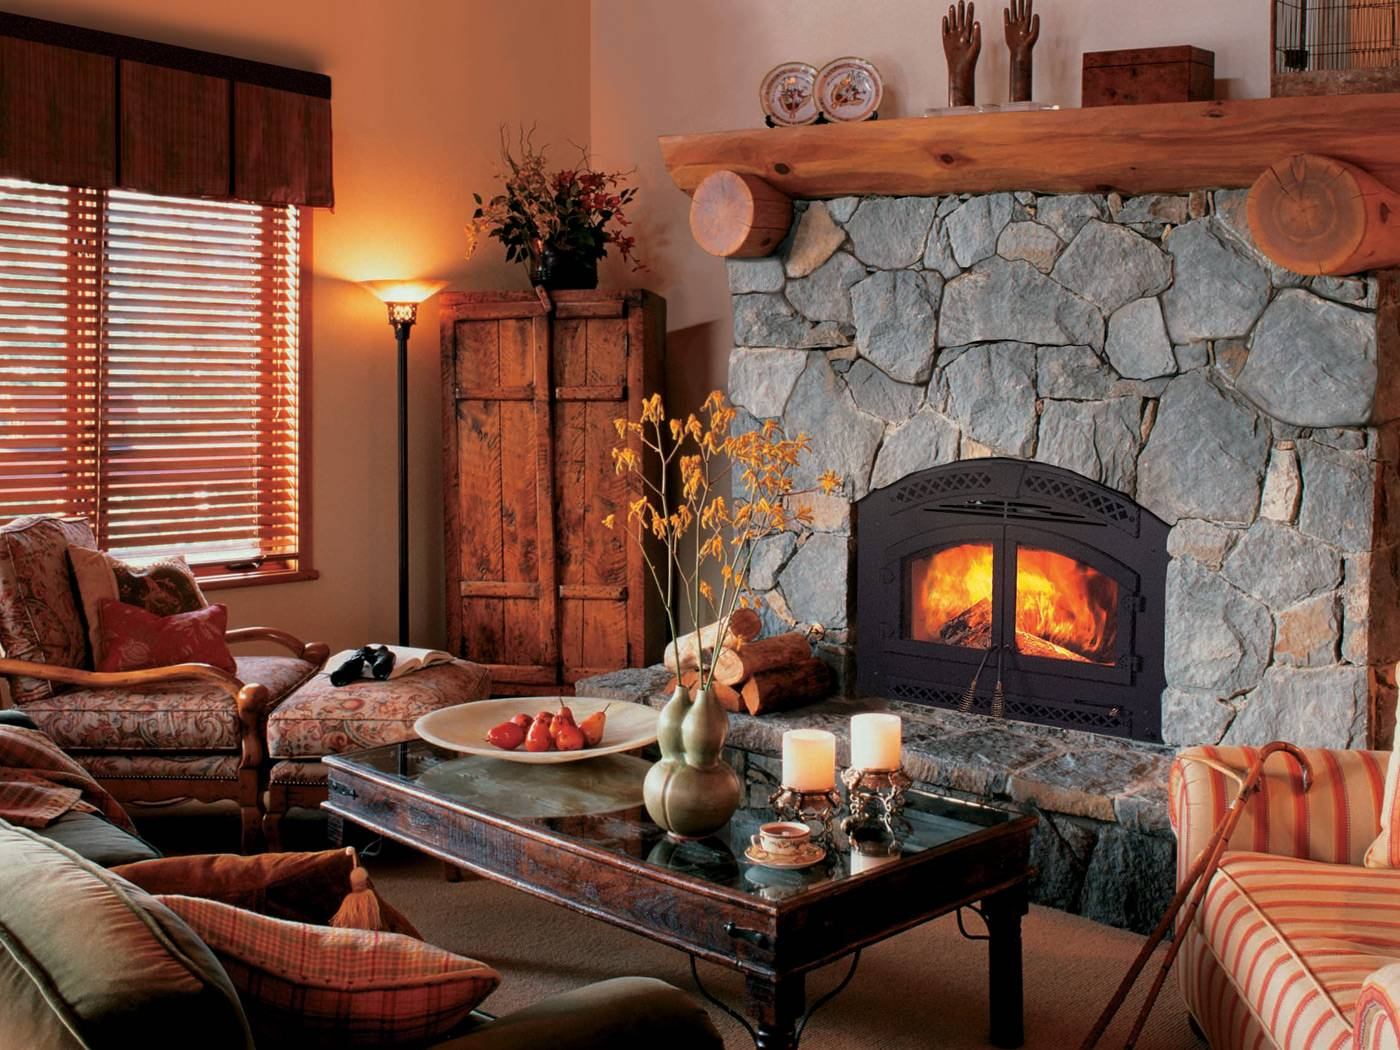 Indoor wood burning fireplaces wood fireplaces lansing mi - Decoracion de chimeneas rusticas ...